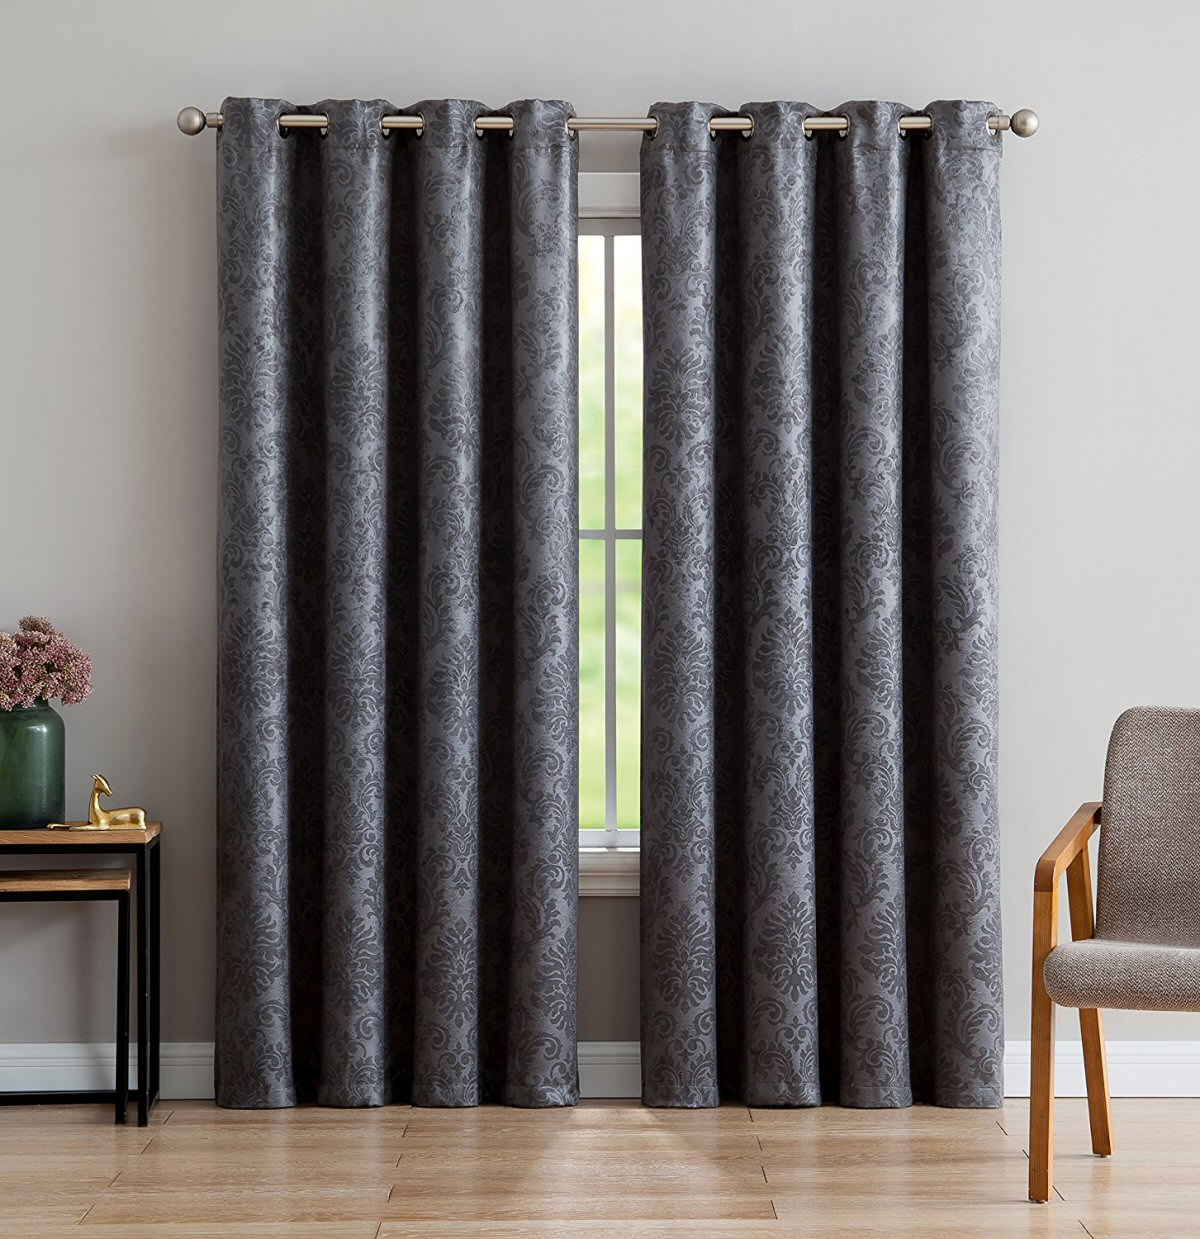 Spare Bedroom - Make It Glam For Guests - Blackout Curtains